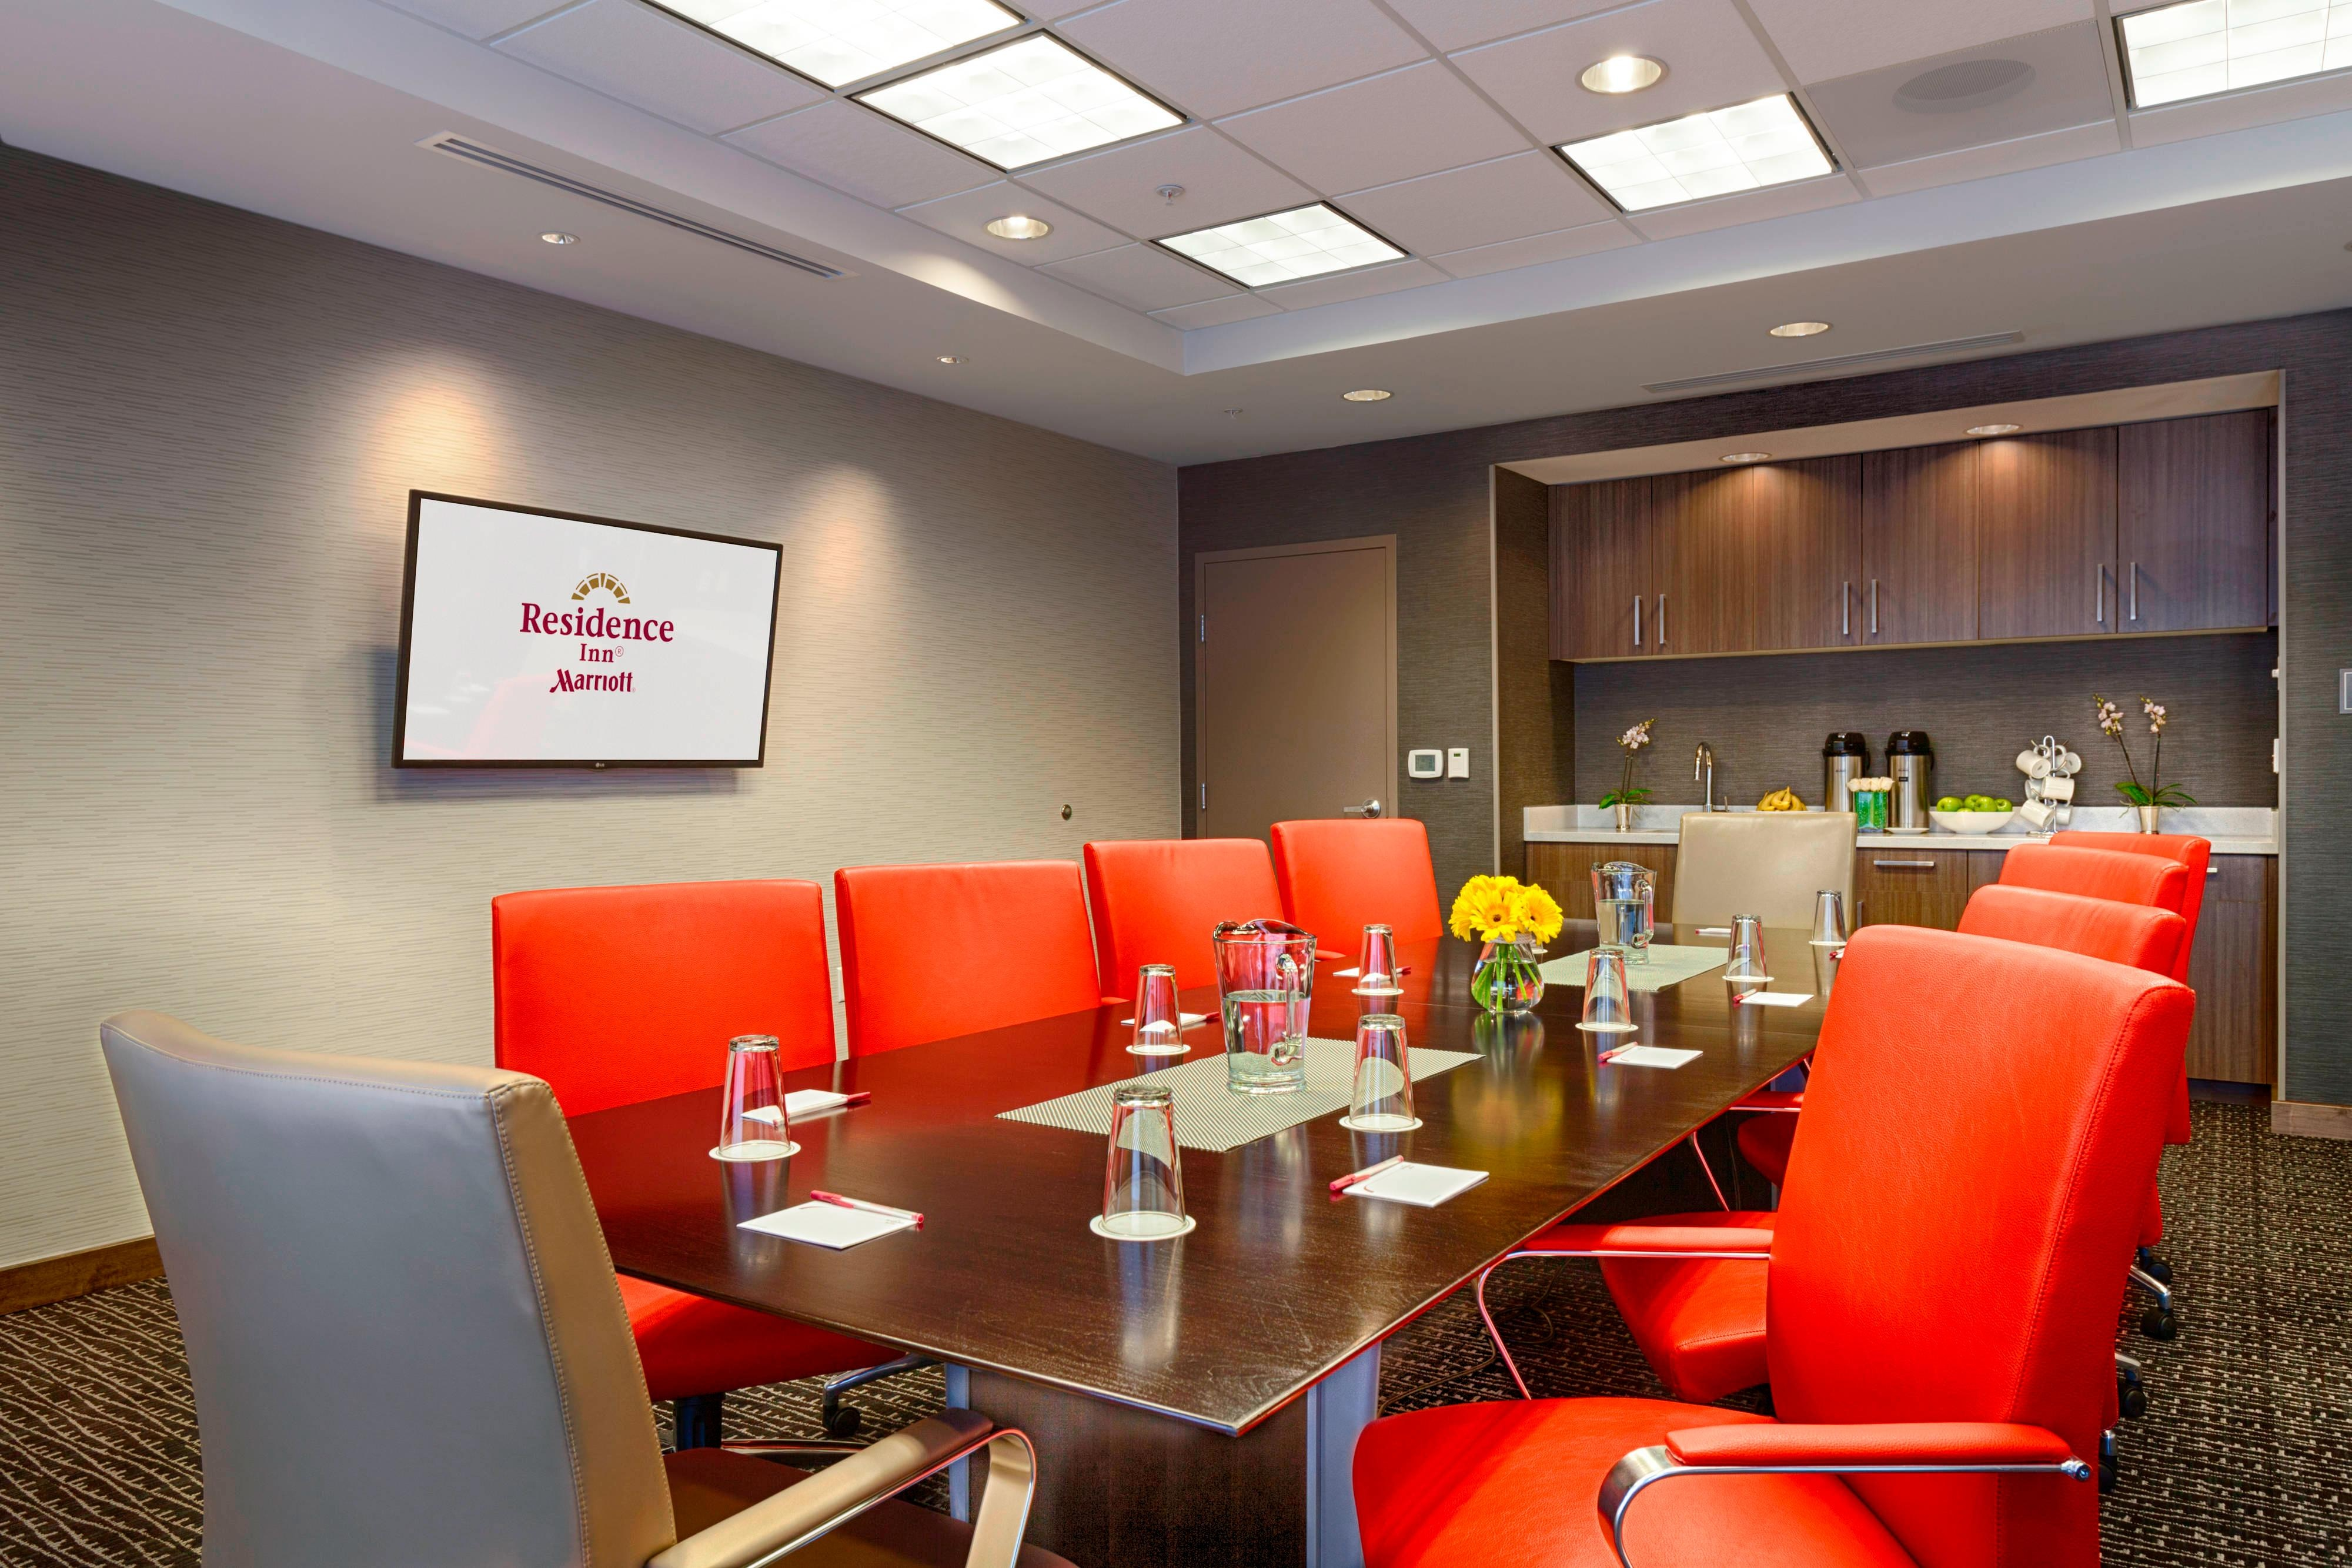 Residence Inn Pullman, Washington Extended Stay Hotel Boardroom Meeting Space